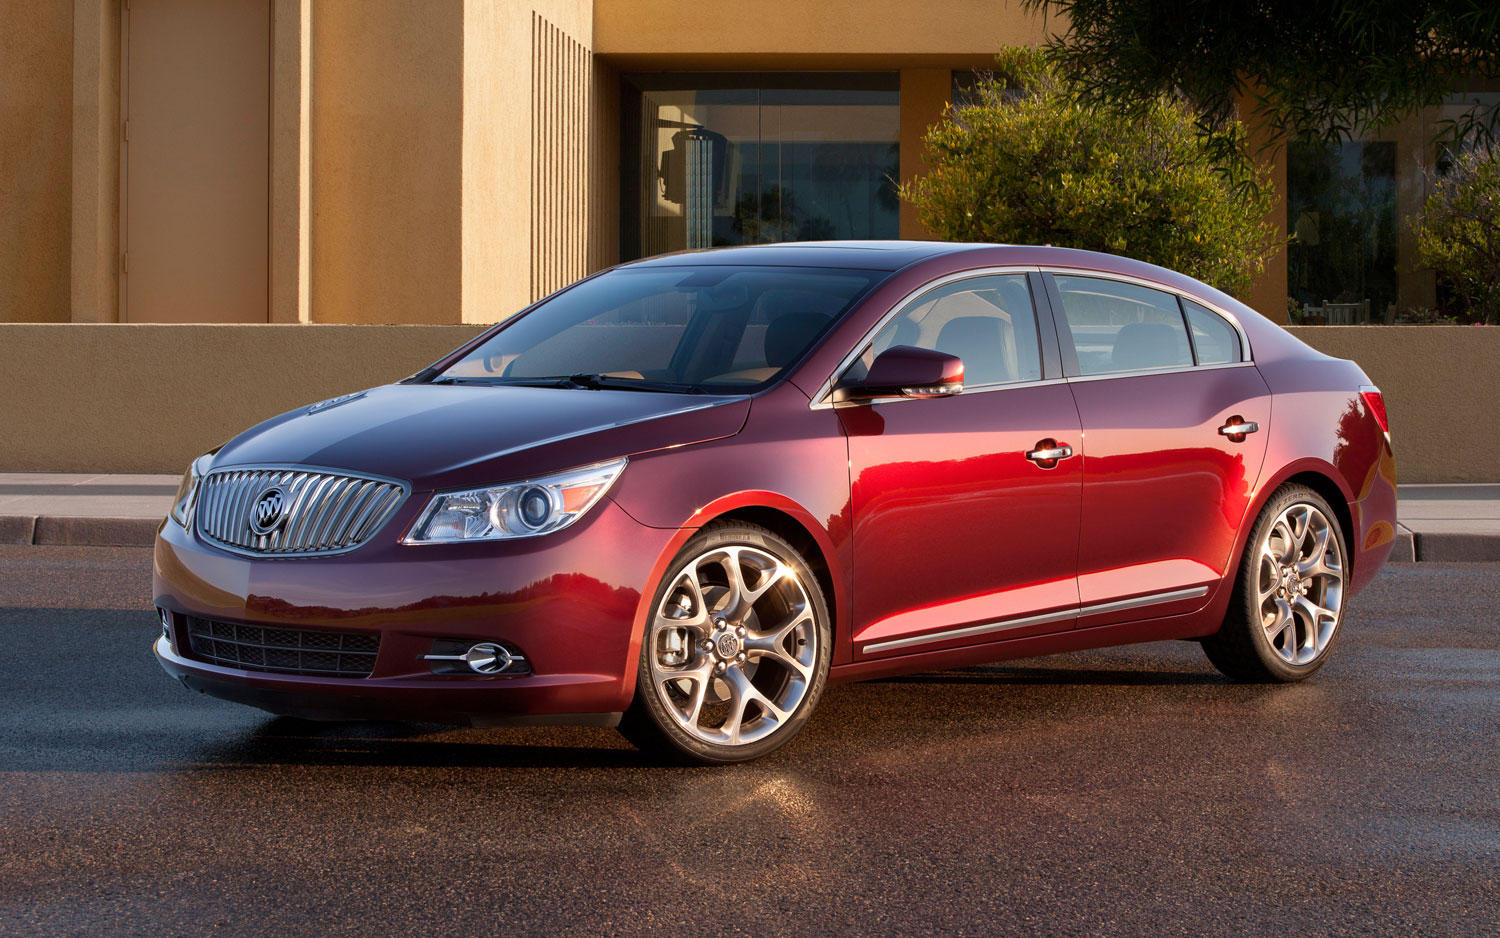 First Look: 2012 Buick LaCrosse GL Concept - Automobile ...